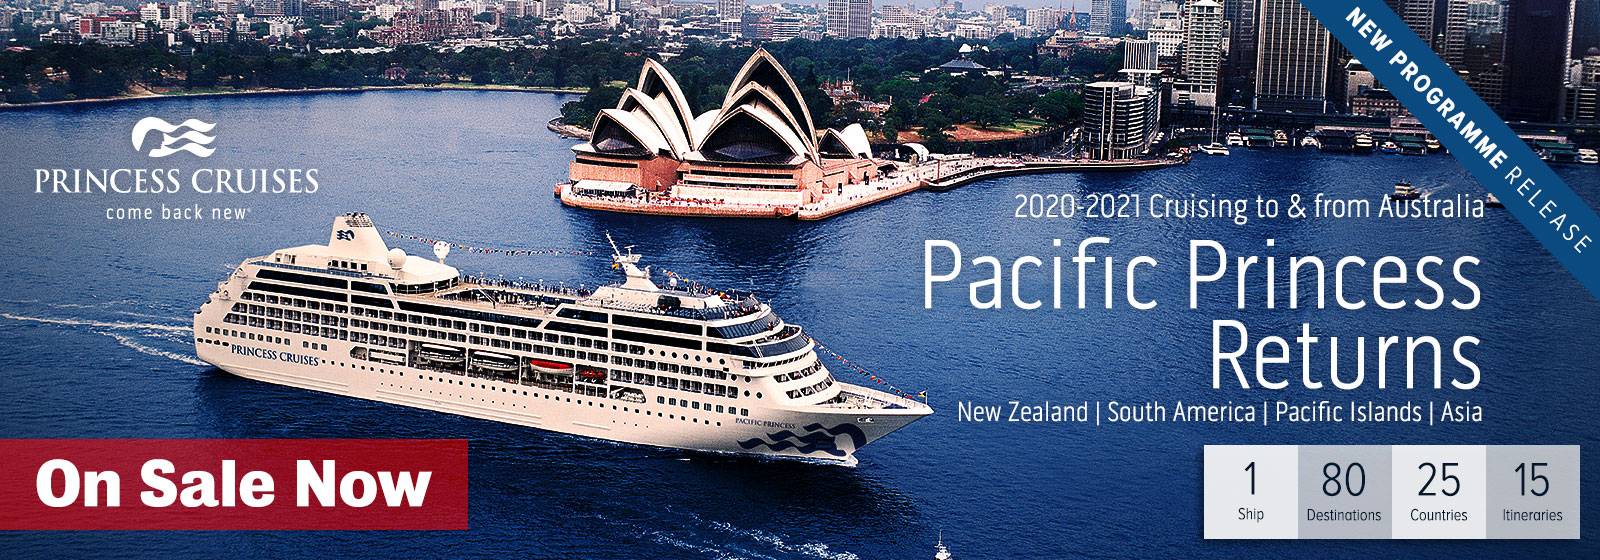 Pacific Princess Returns 20/21-new2